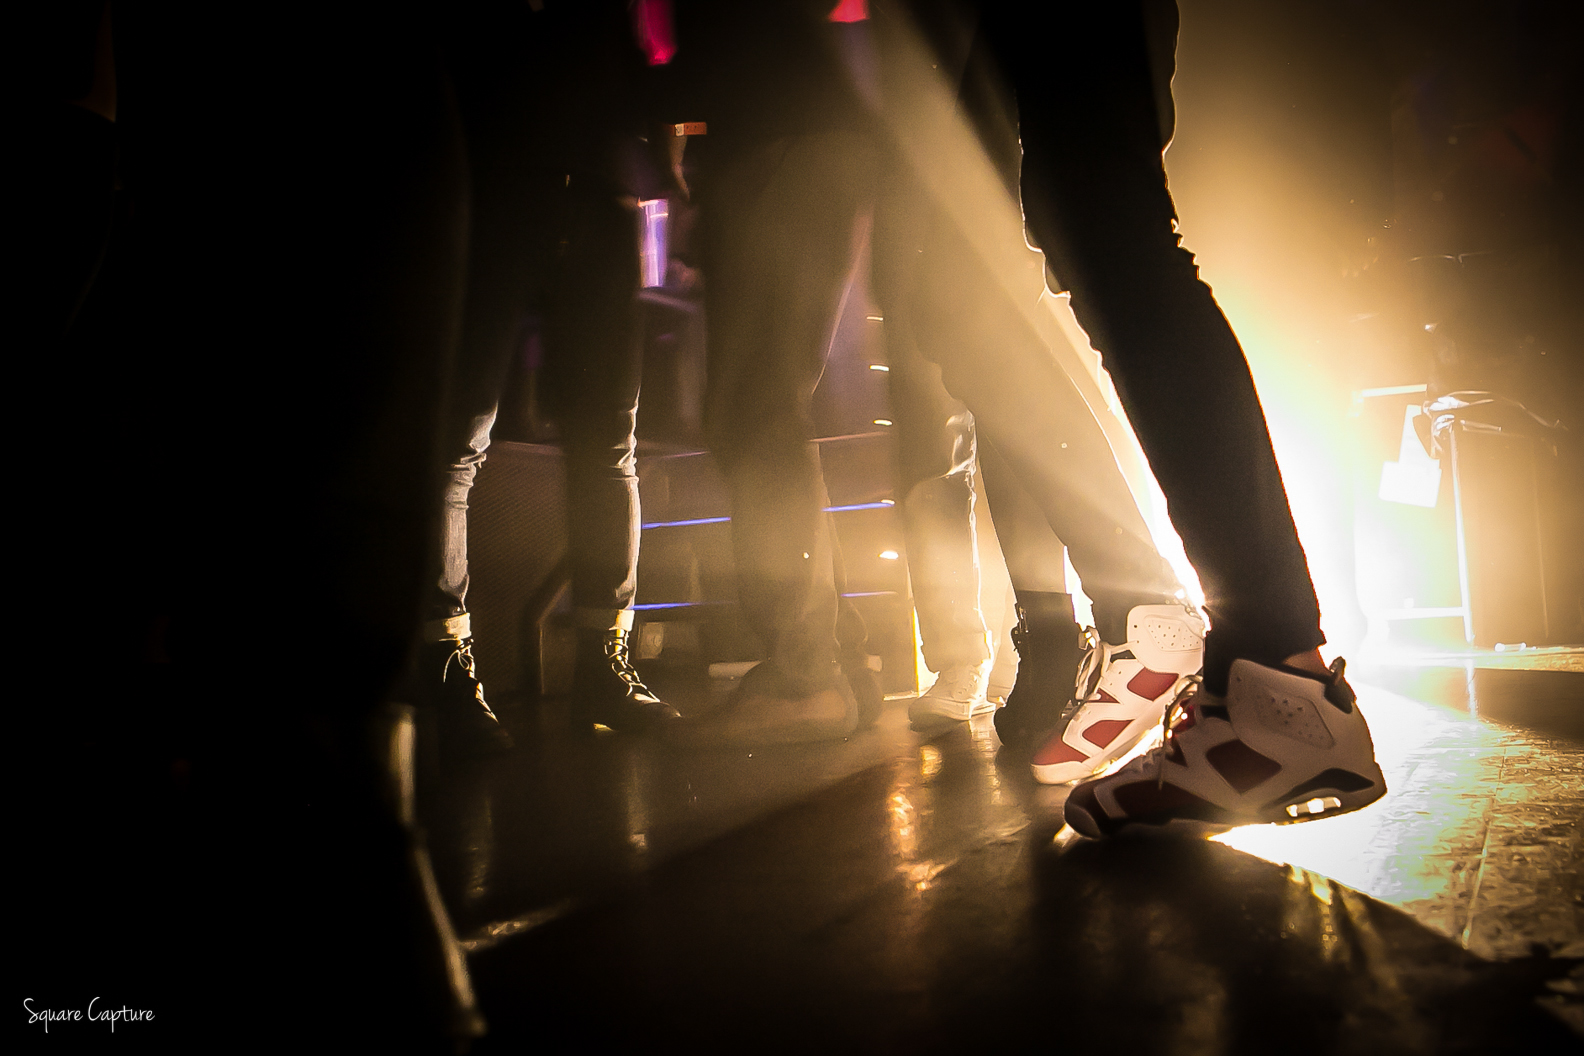 footwear-in-the-club-photography